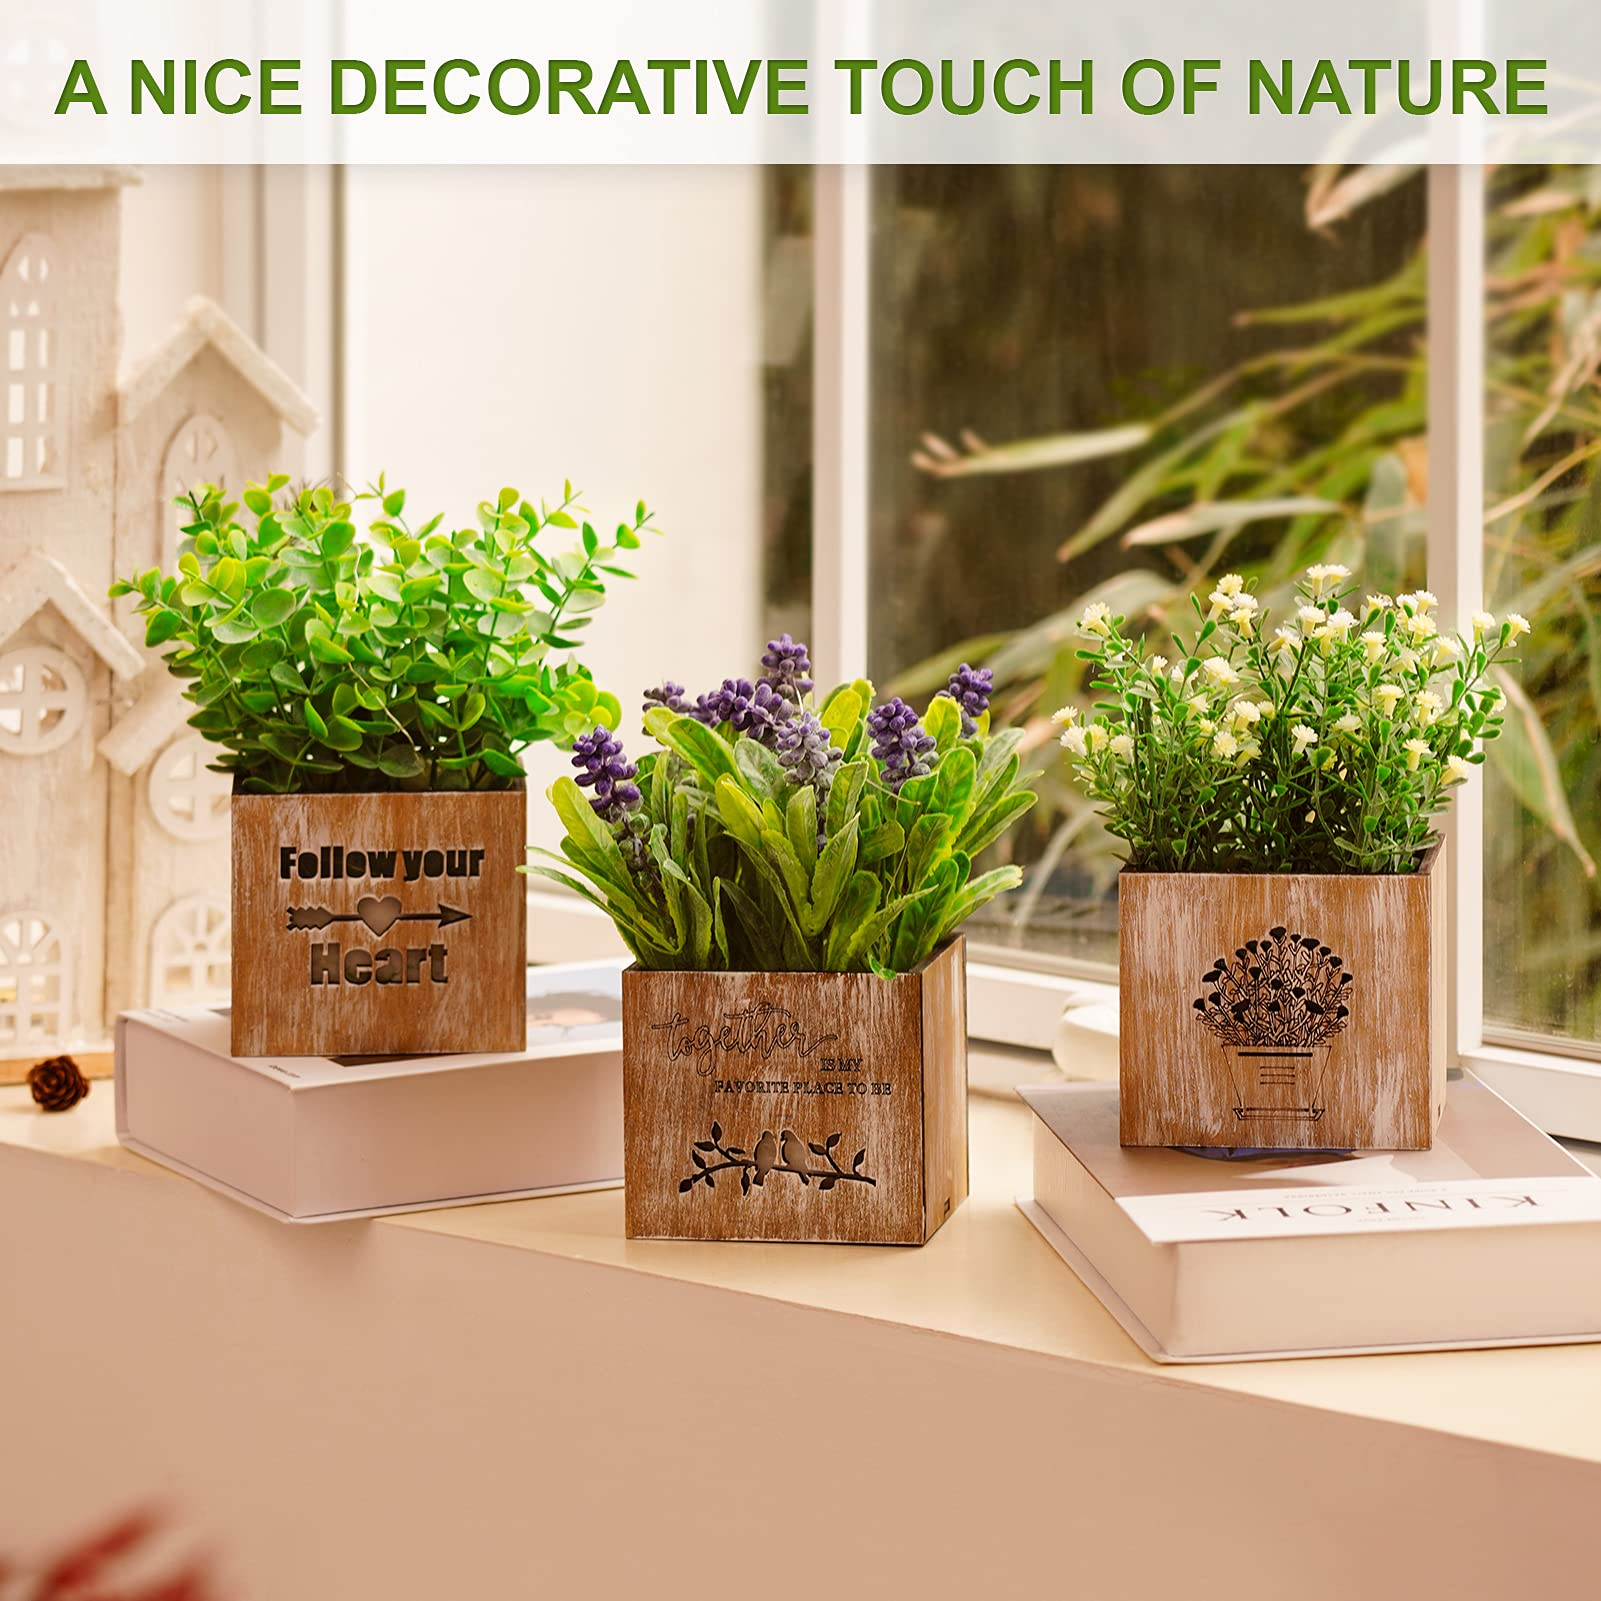 Kinkota Artificial Plants & Flowers with Lights in Wooden Box, Potted Fake Faux Plants Eucalyptus for Home Decor Indoor, Greenery Tabletop Centerpieces for Office Room Decoration - 3 Pack (Original)